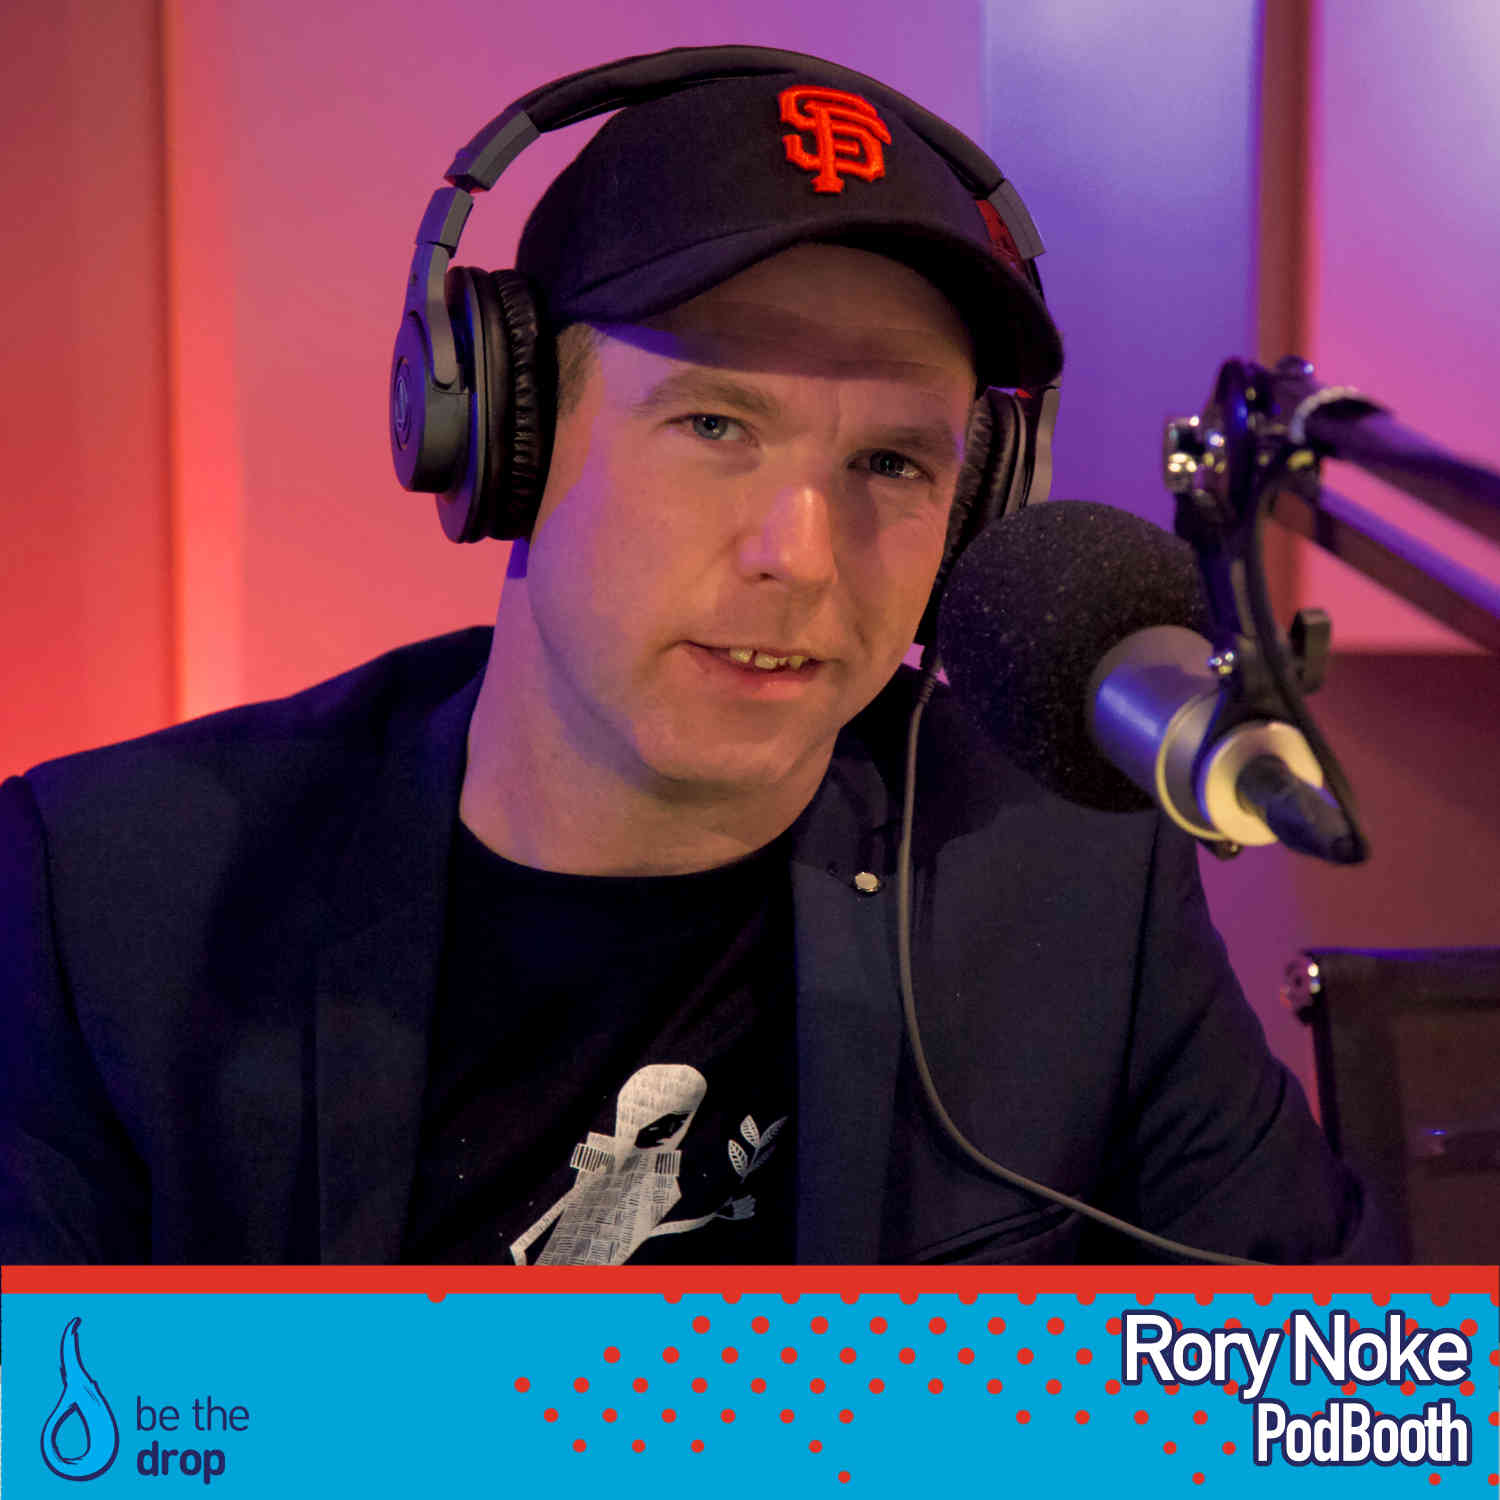 How To Start Podcasting With Rory Noke [Podcast]